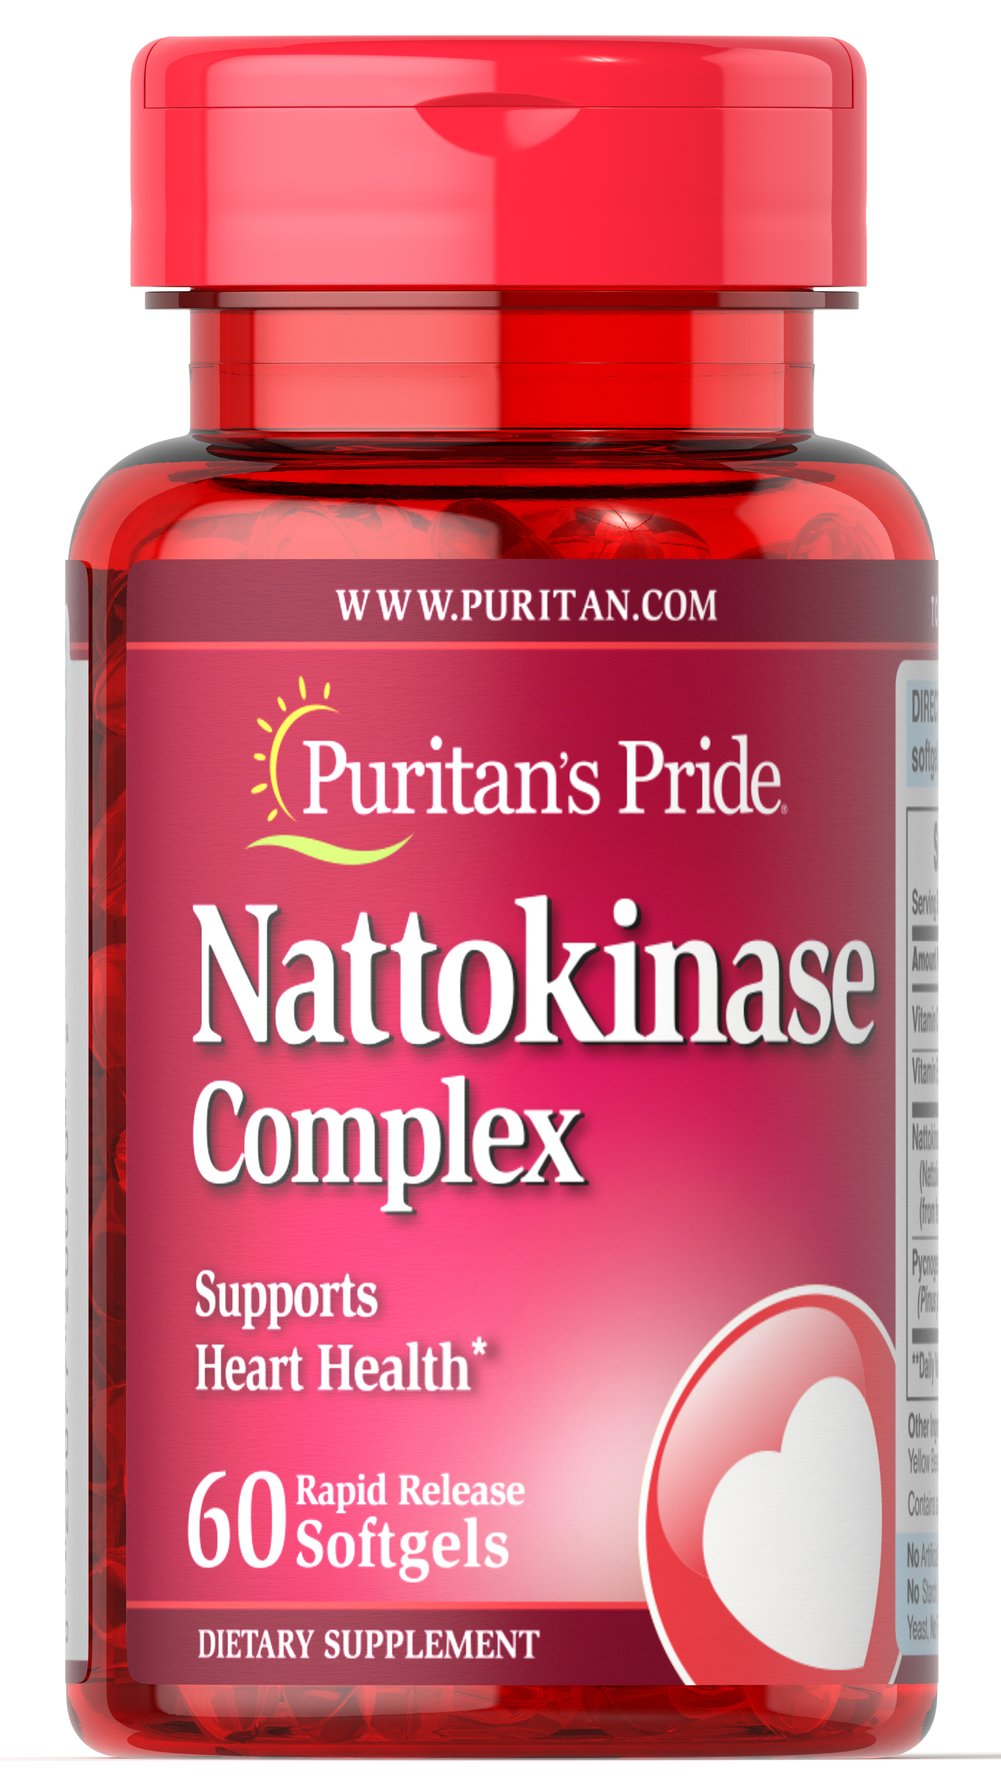 Nattokinase 100 mg Complex  60 Softgels 100 mg $48.99